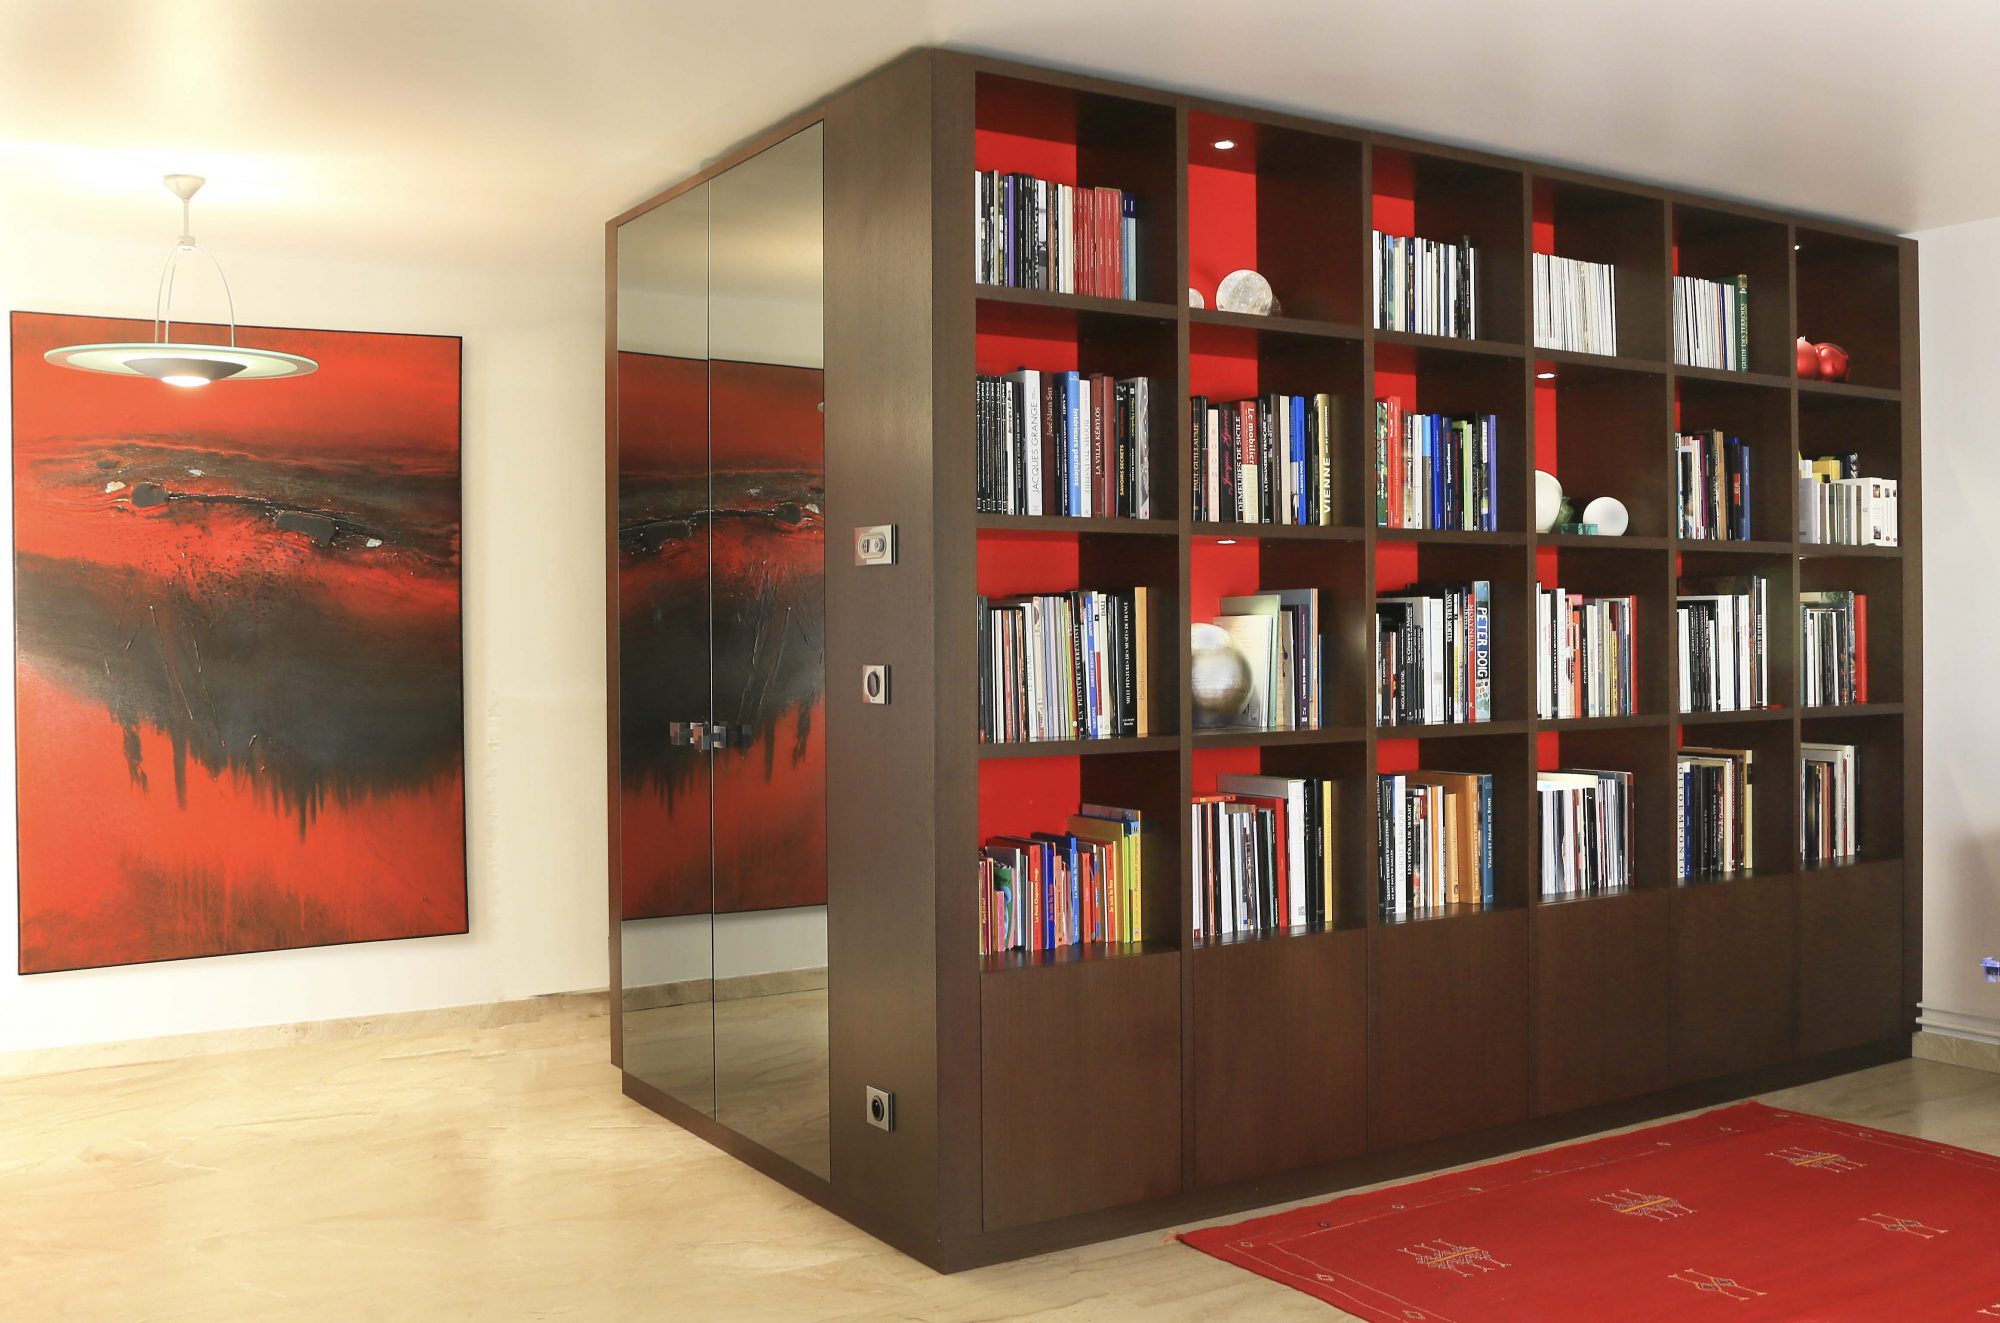 biblioth que volpon b niste et agenceur lyon. Black Bedroom Furniture Sets. Home Design Ideas